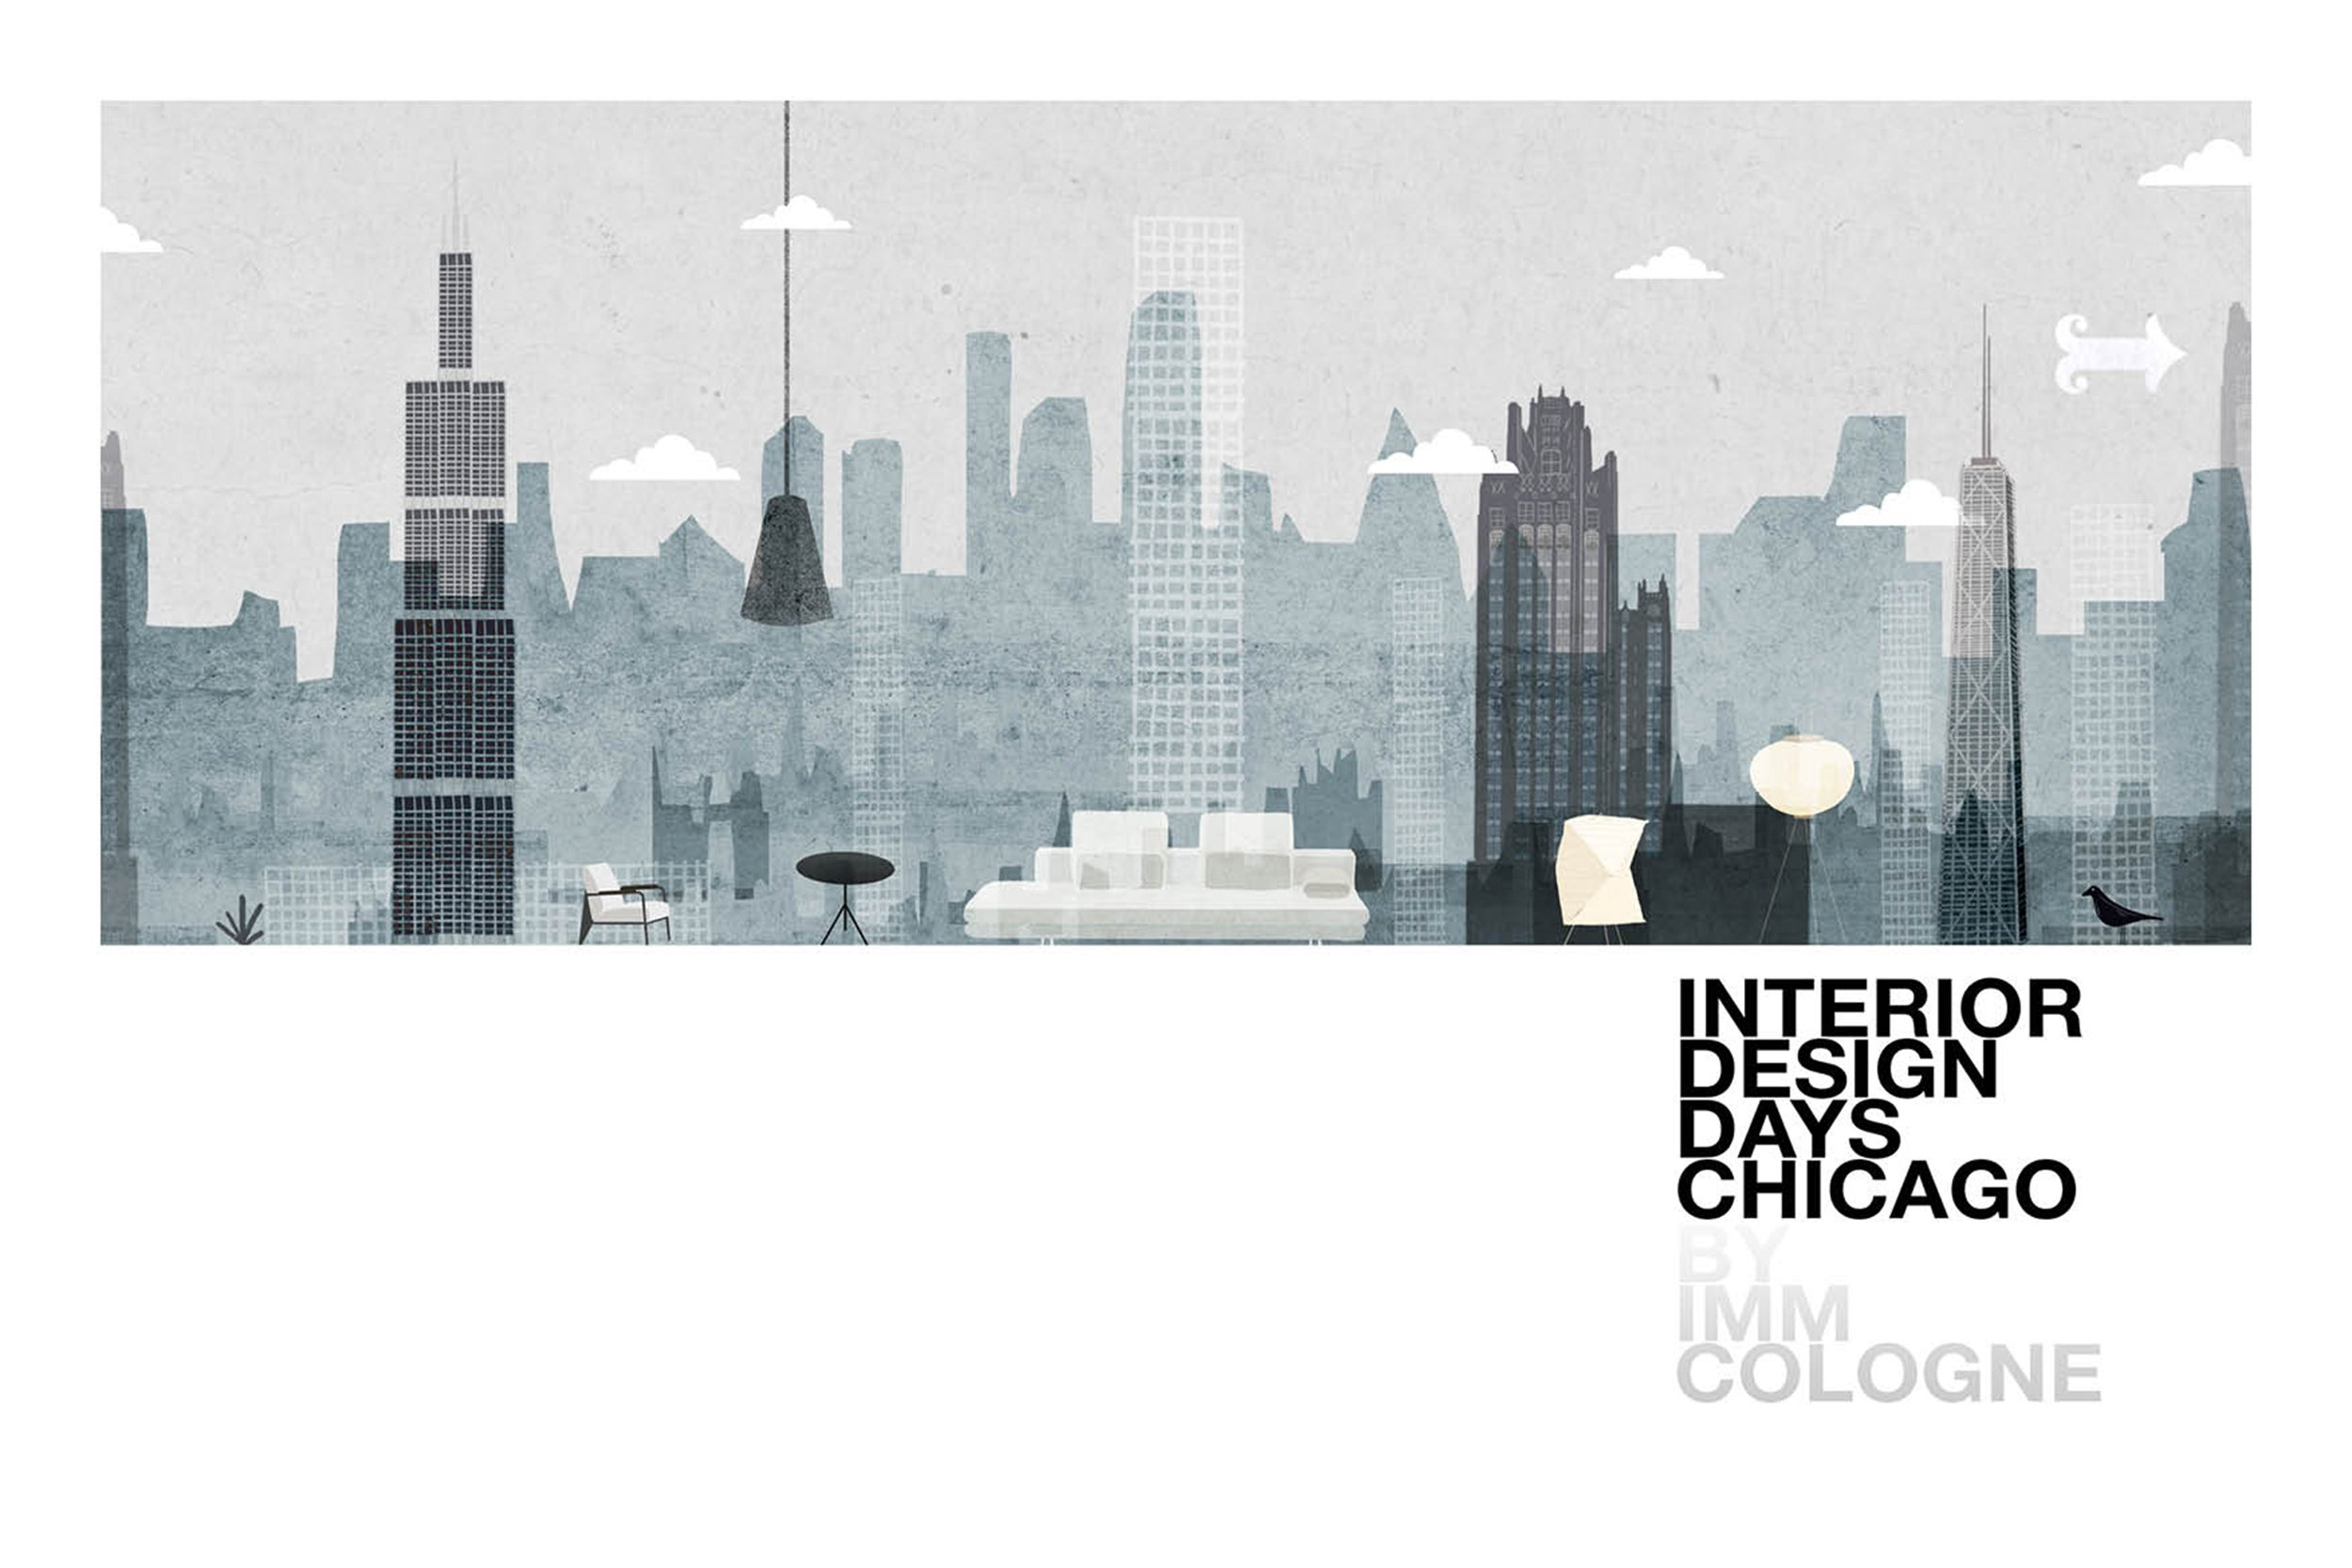 https://farconsulting.de/wp-content/uploads/2020/03/01_IMM_Interior_Design_Day_Chicago_2020.jpg